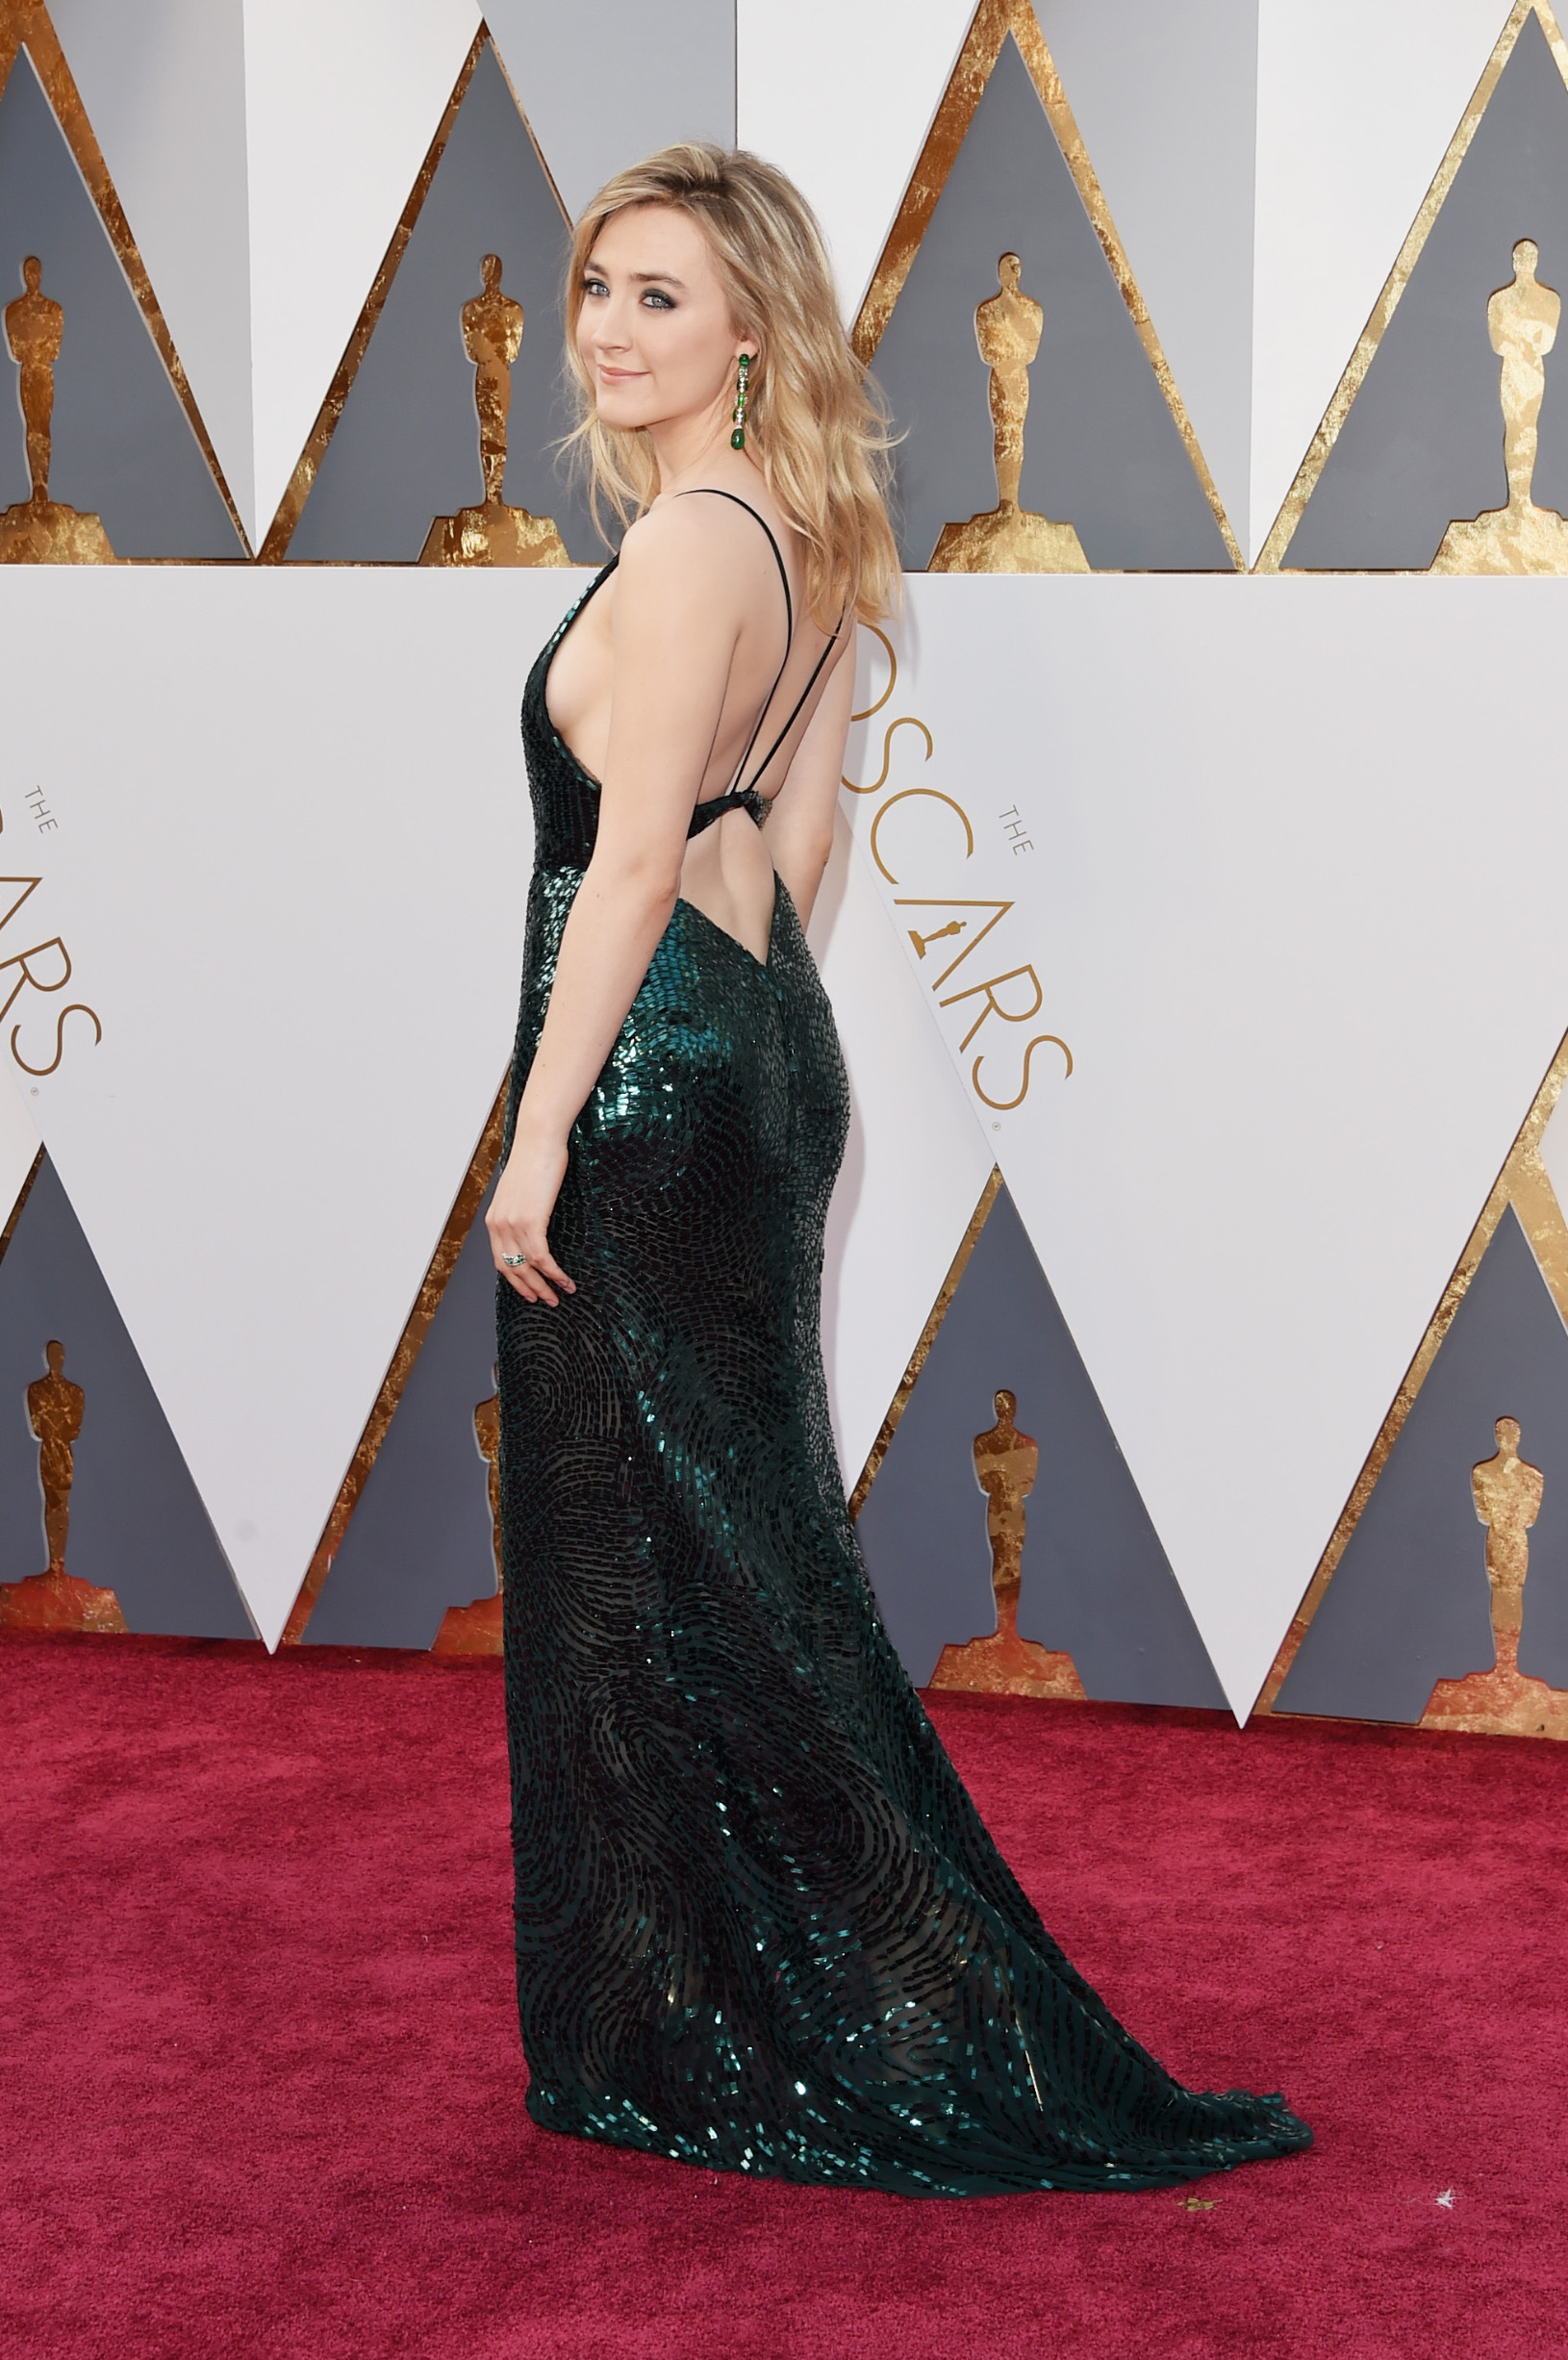 HOLLYWOOD, CA - FEBRUARY 28: Actress Saoirse Ronan attends the 88th Annual Academy Awards at Hollywood & Highland Center on February 28, 2016 in Hollywood, California.  (Photo by Jason Merritt/Getty Images)